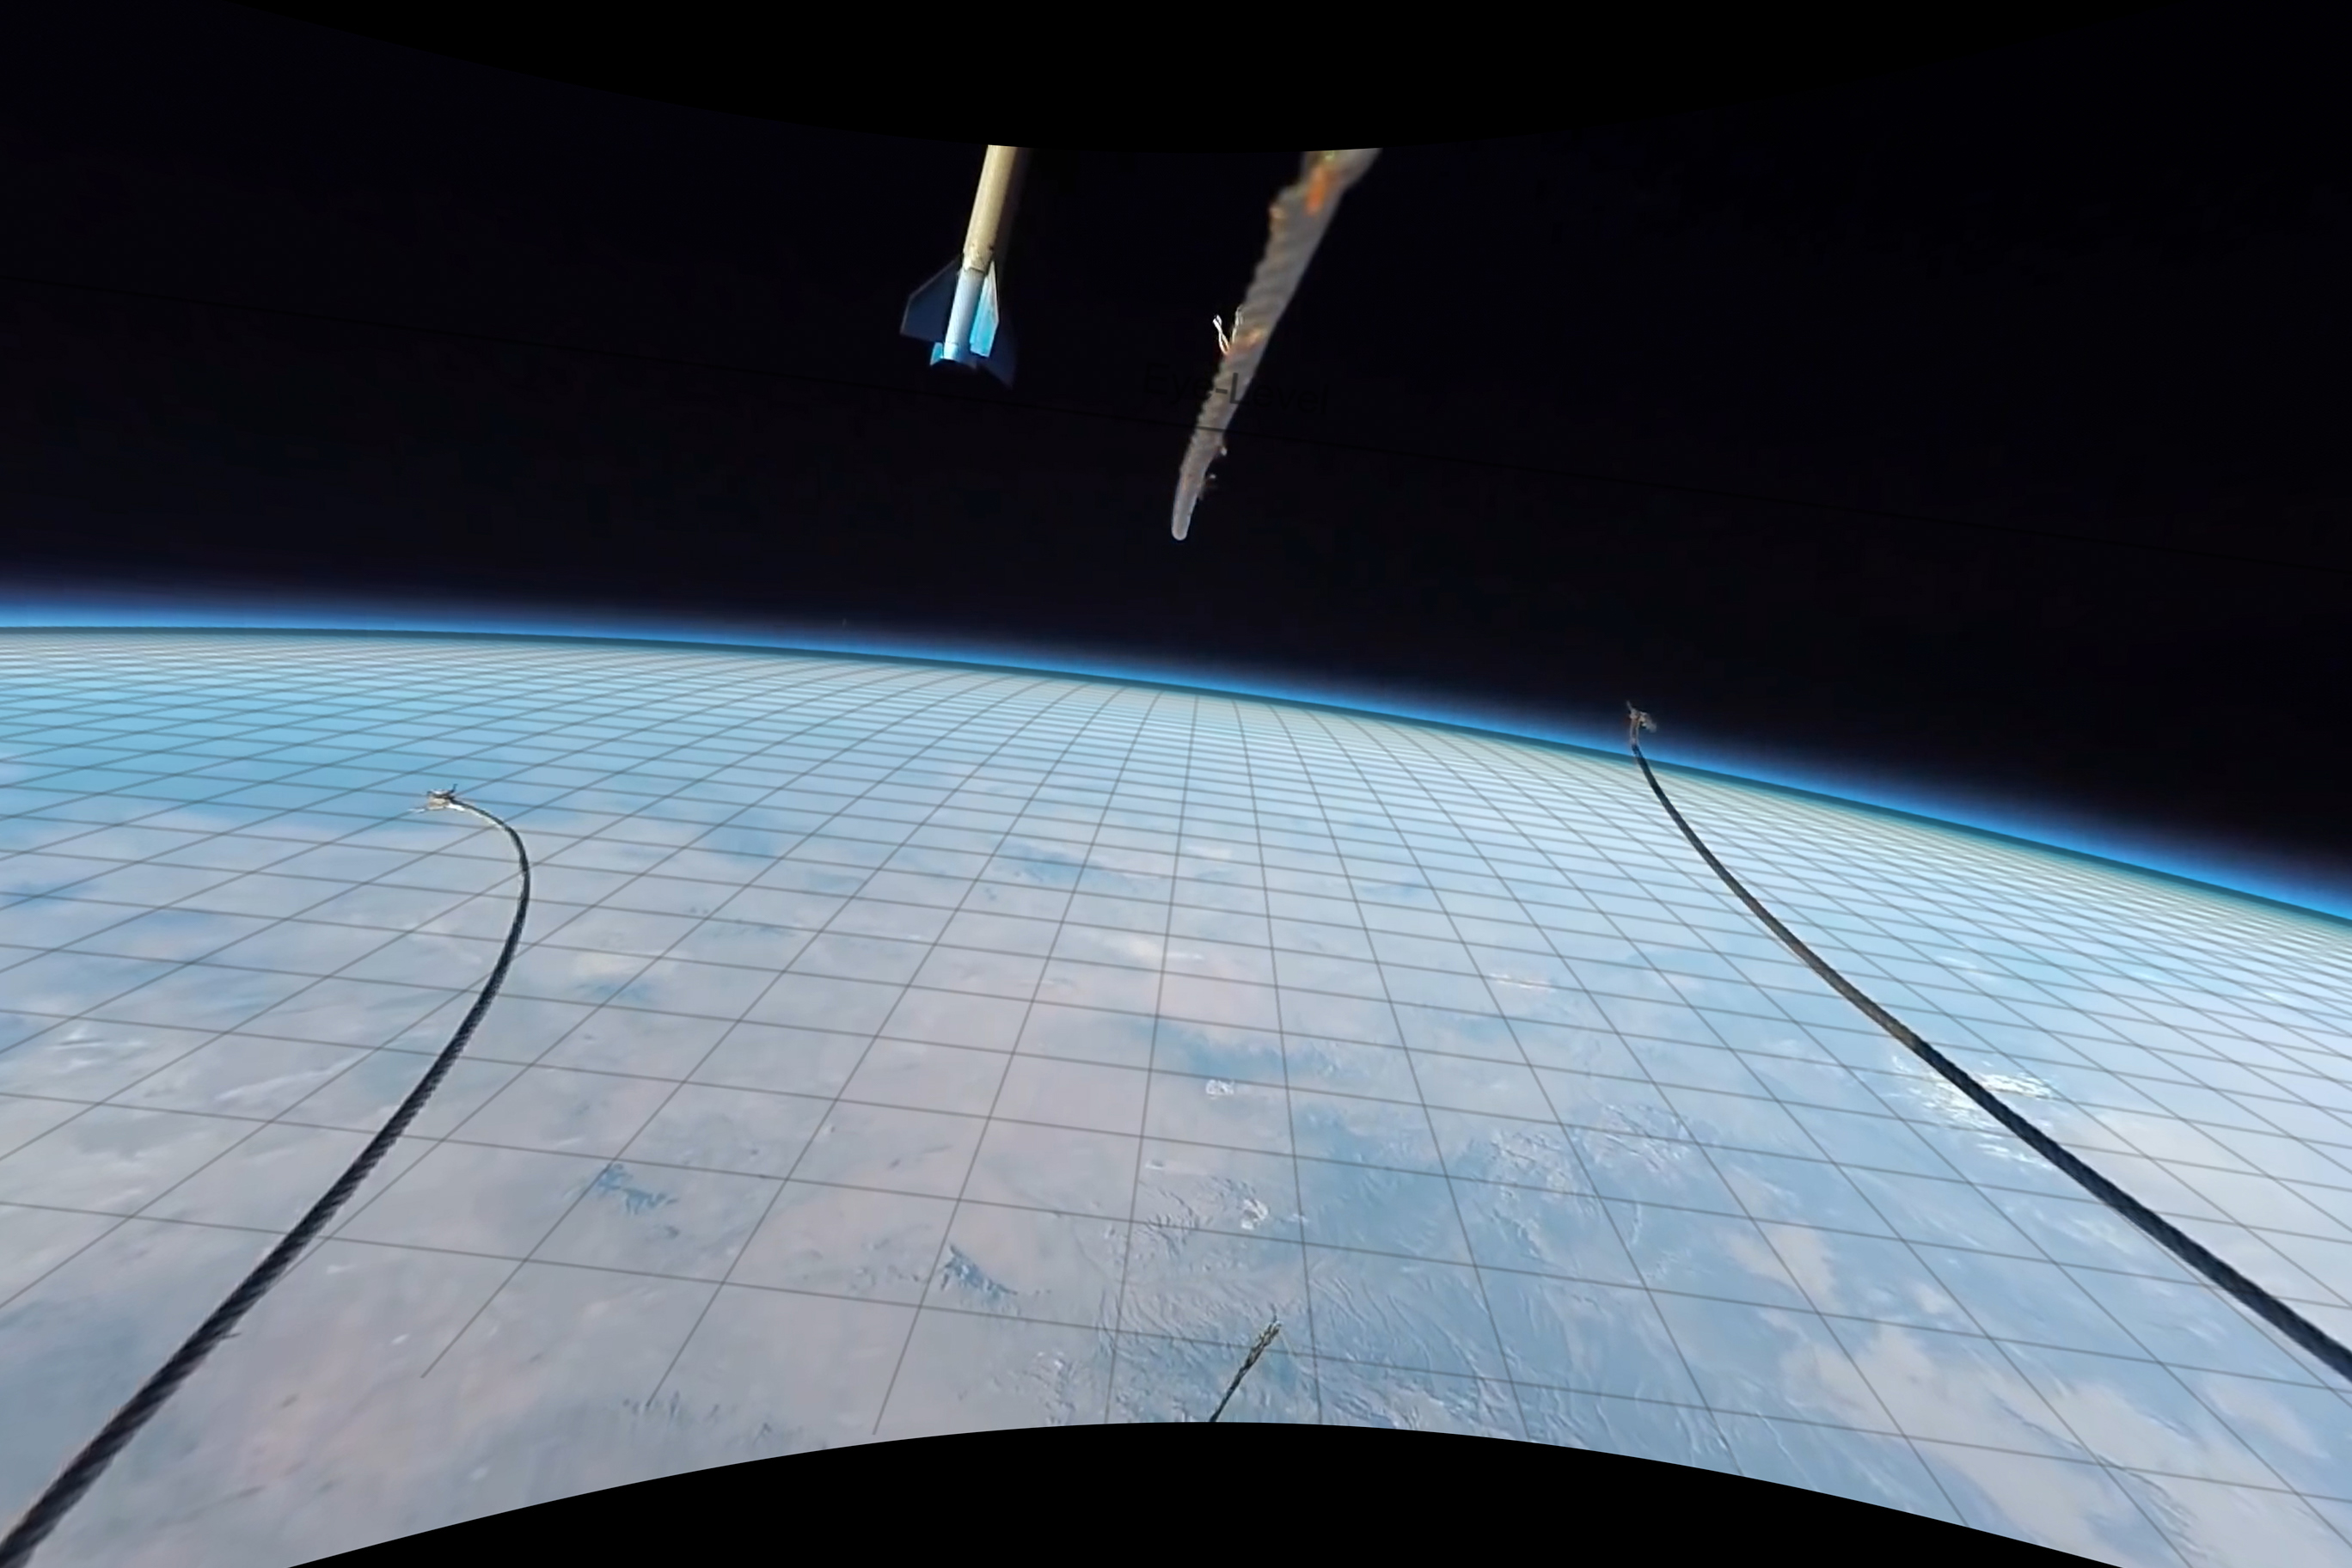 Flat-Earth: Finding the curvature of the Earth